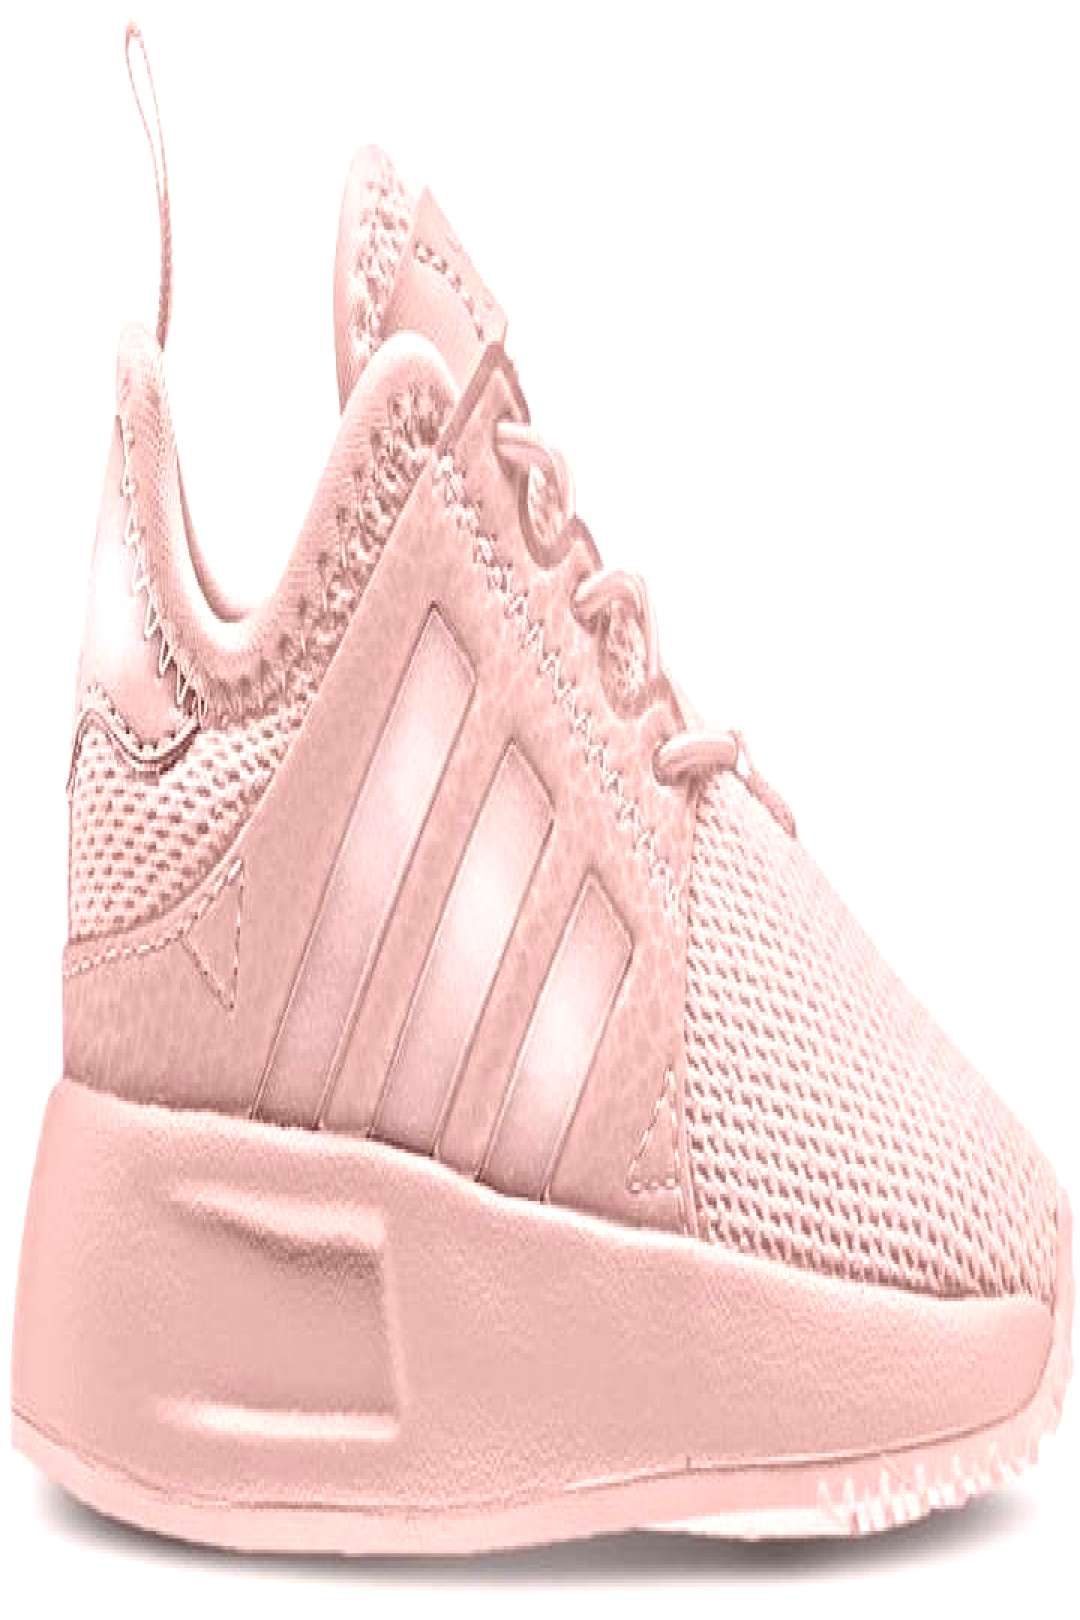 adidas Toddler Girls' X-plr Casual Athletic Sneakers from Finish Line ,